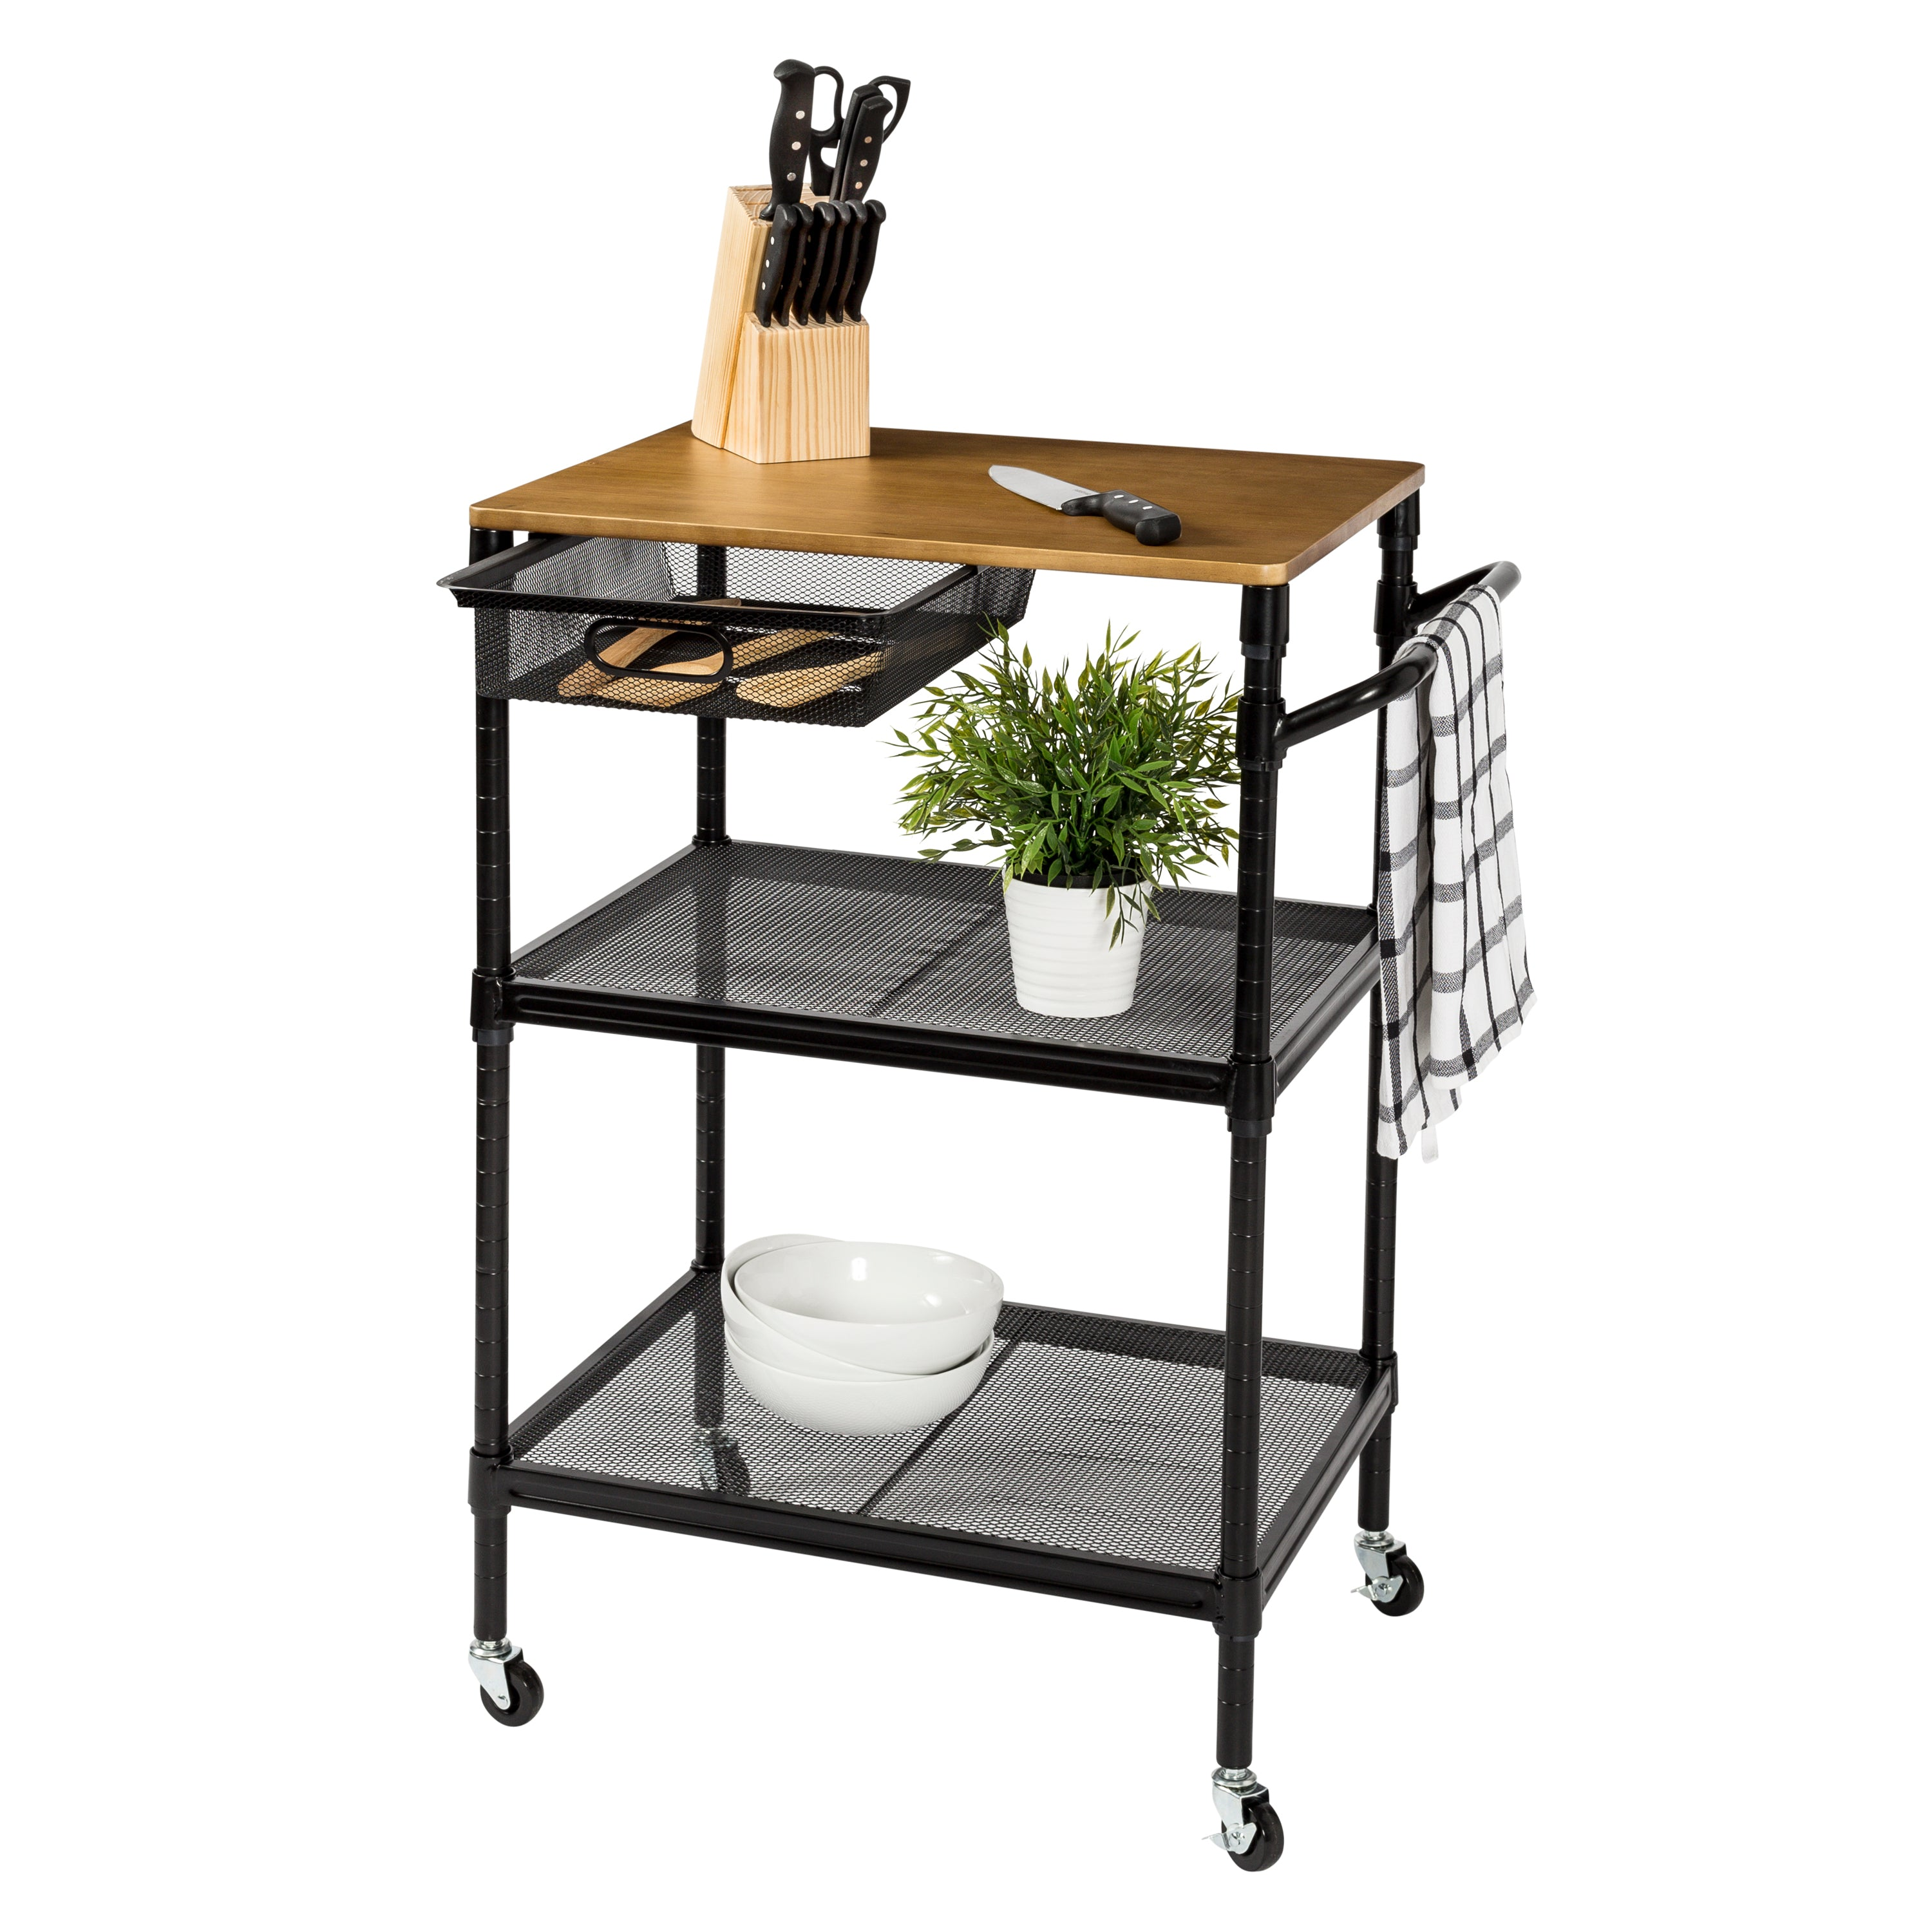 36 Inch Kitchen Storage Cart With Wheels Drawers And Handle Black